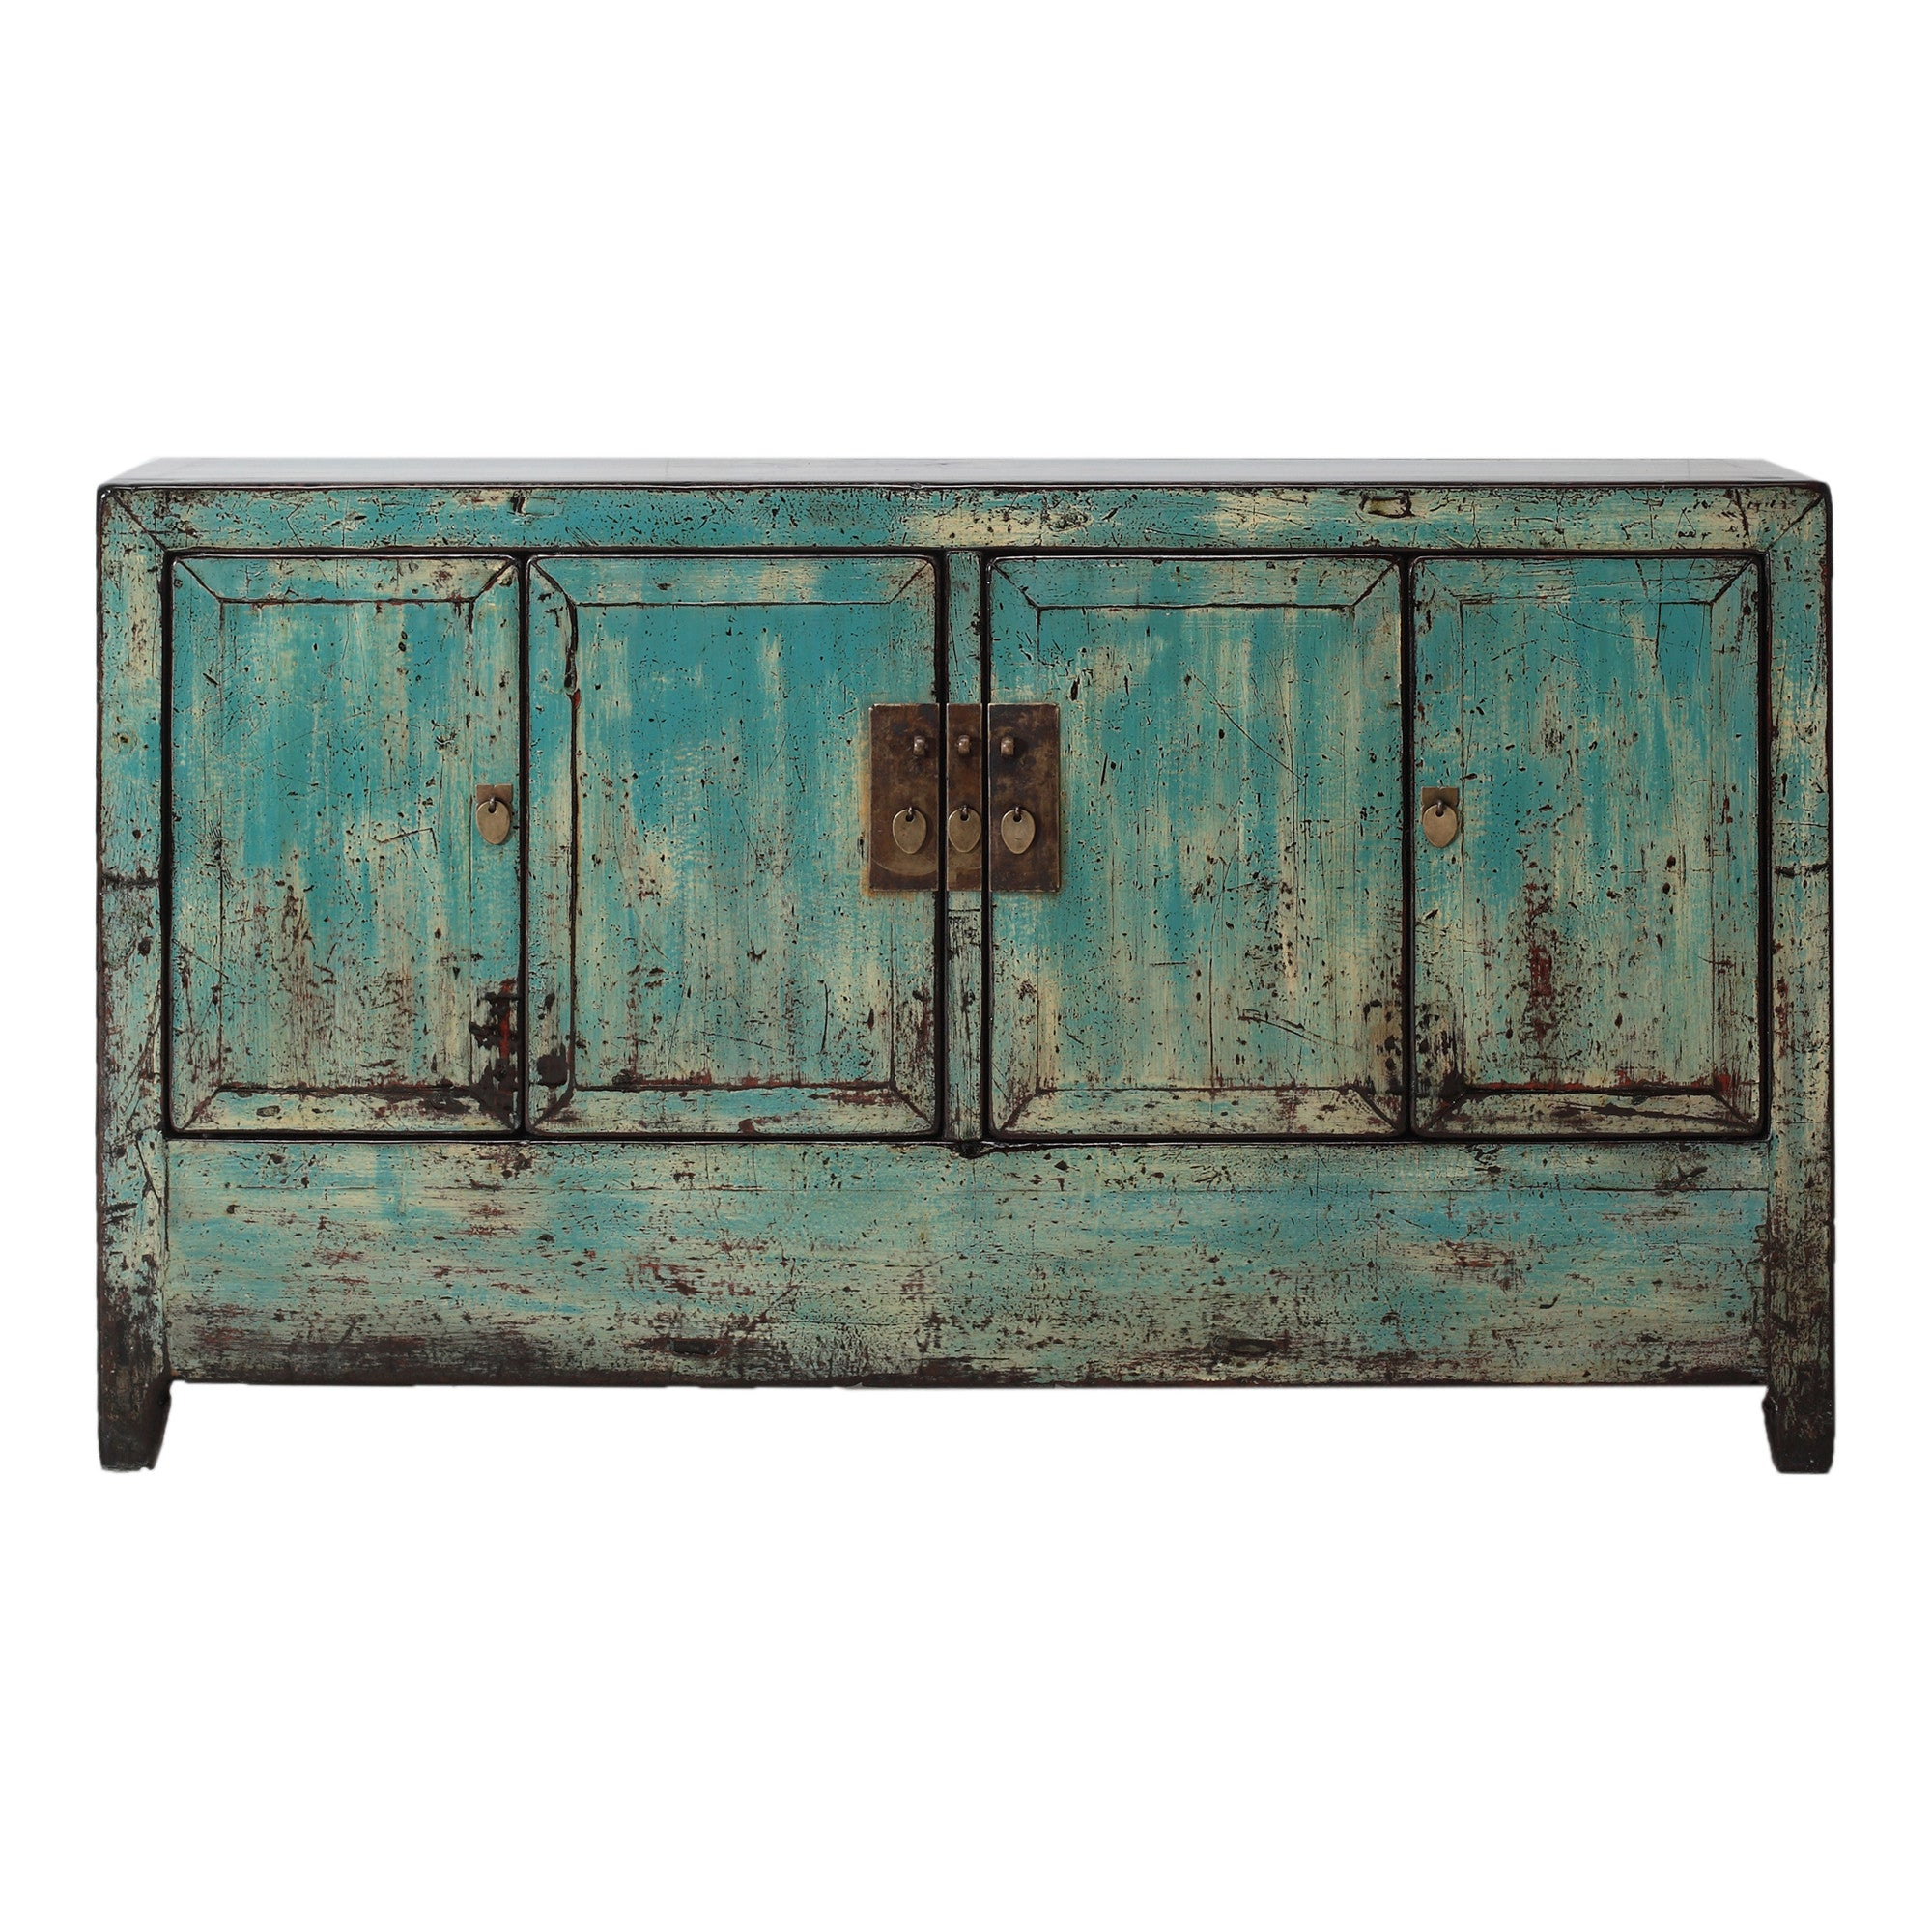 Blue Vintage Sideboard from Dongbei